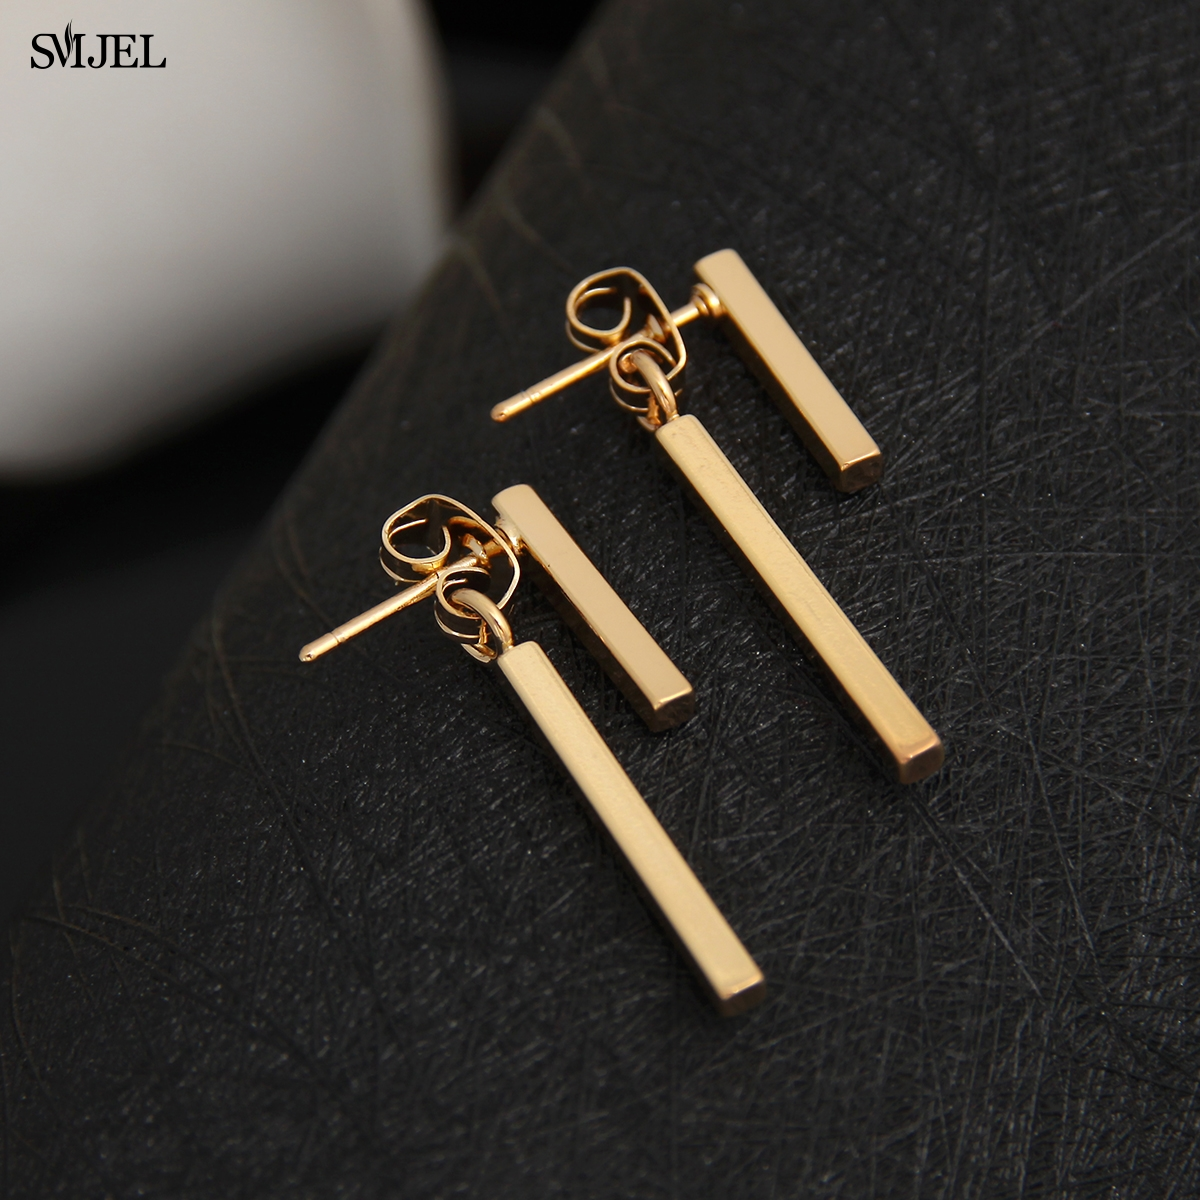 SMJEL 2017 New Fashion Simple T Bar Drop Earring For Women Geometric Ear Jacket Earrings Wedding Gifts S140